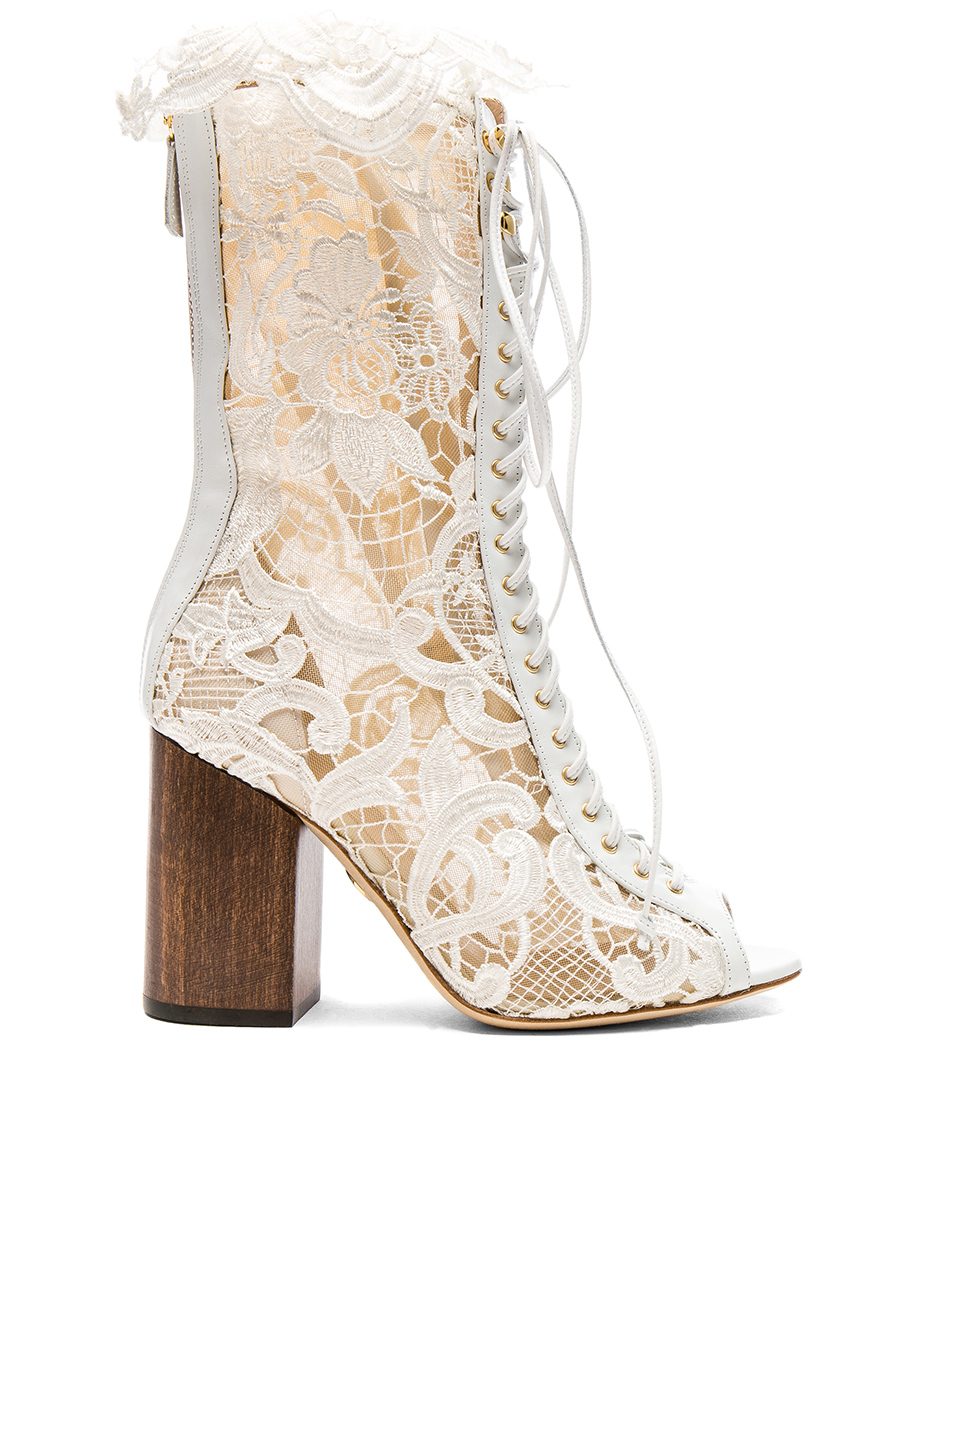 Brother Vellies for FWRD Exclusive Lace Open Toe Lali Boots in White